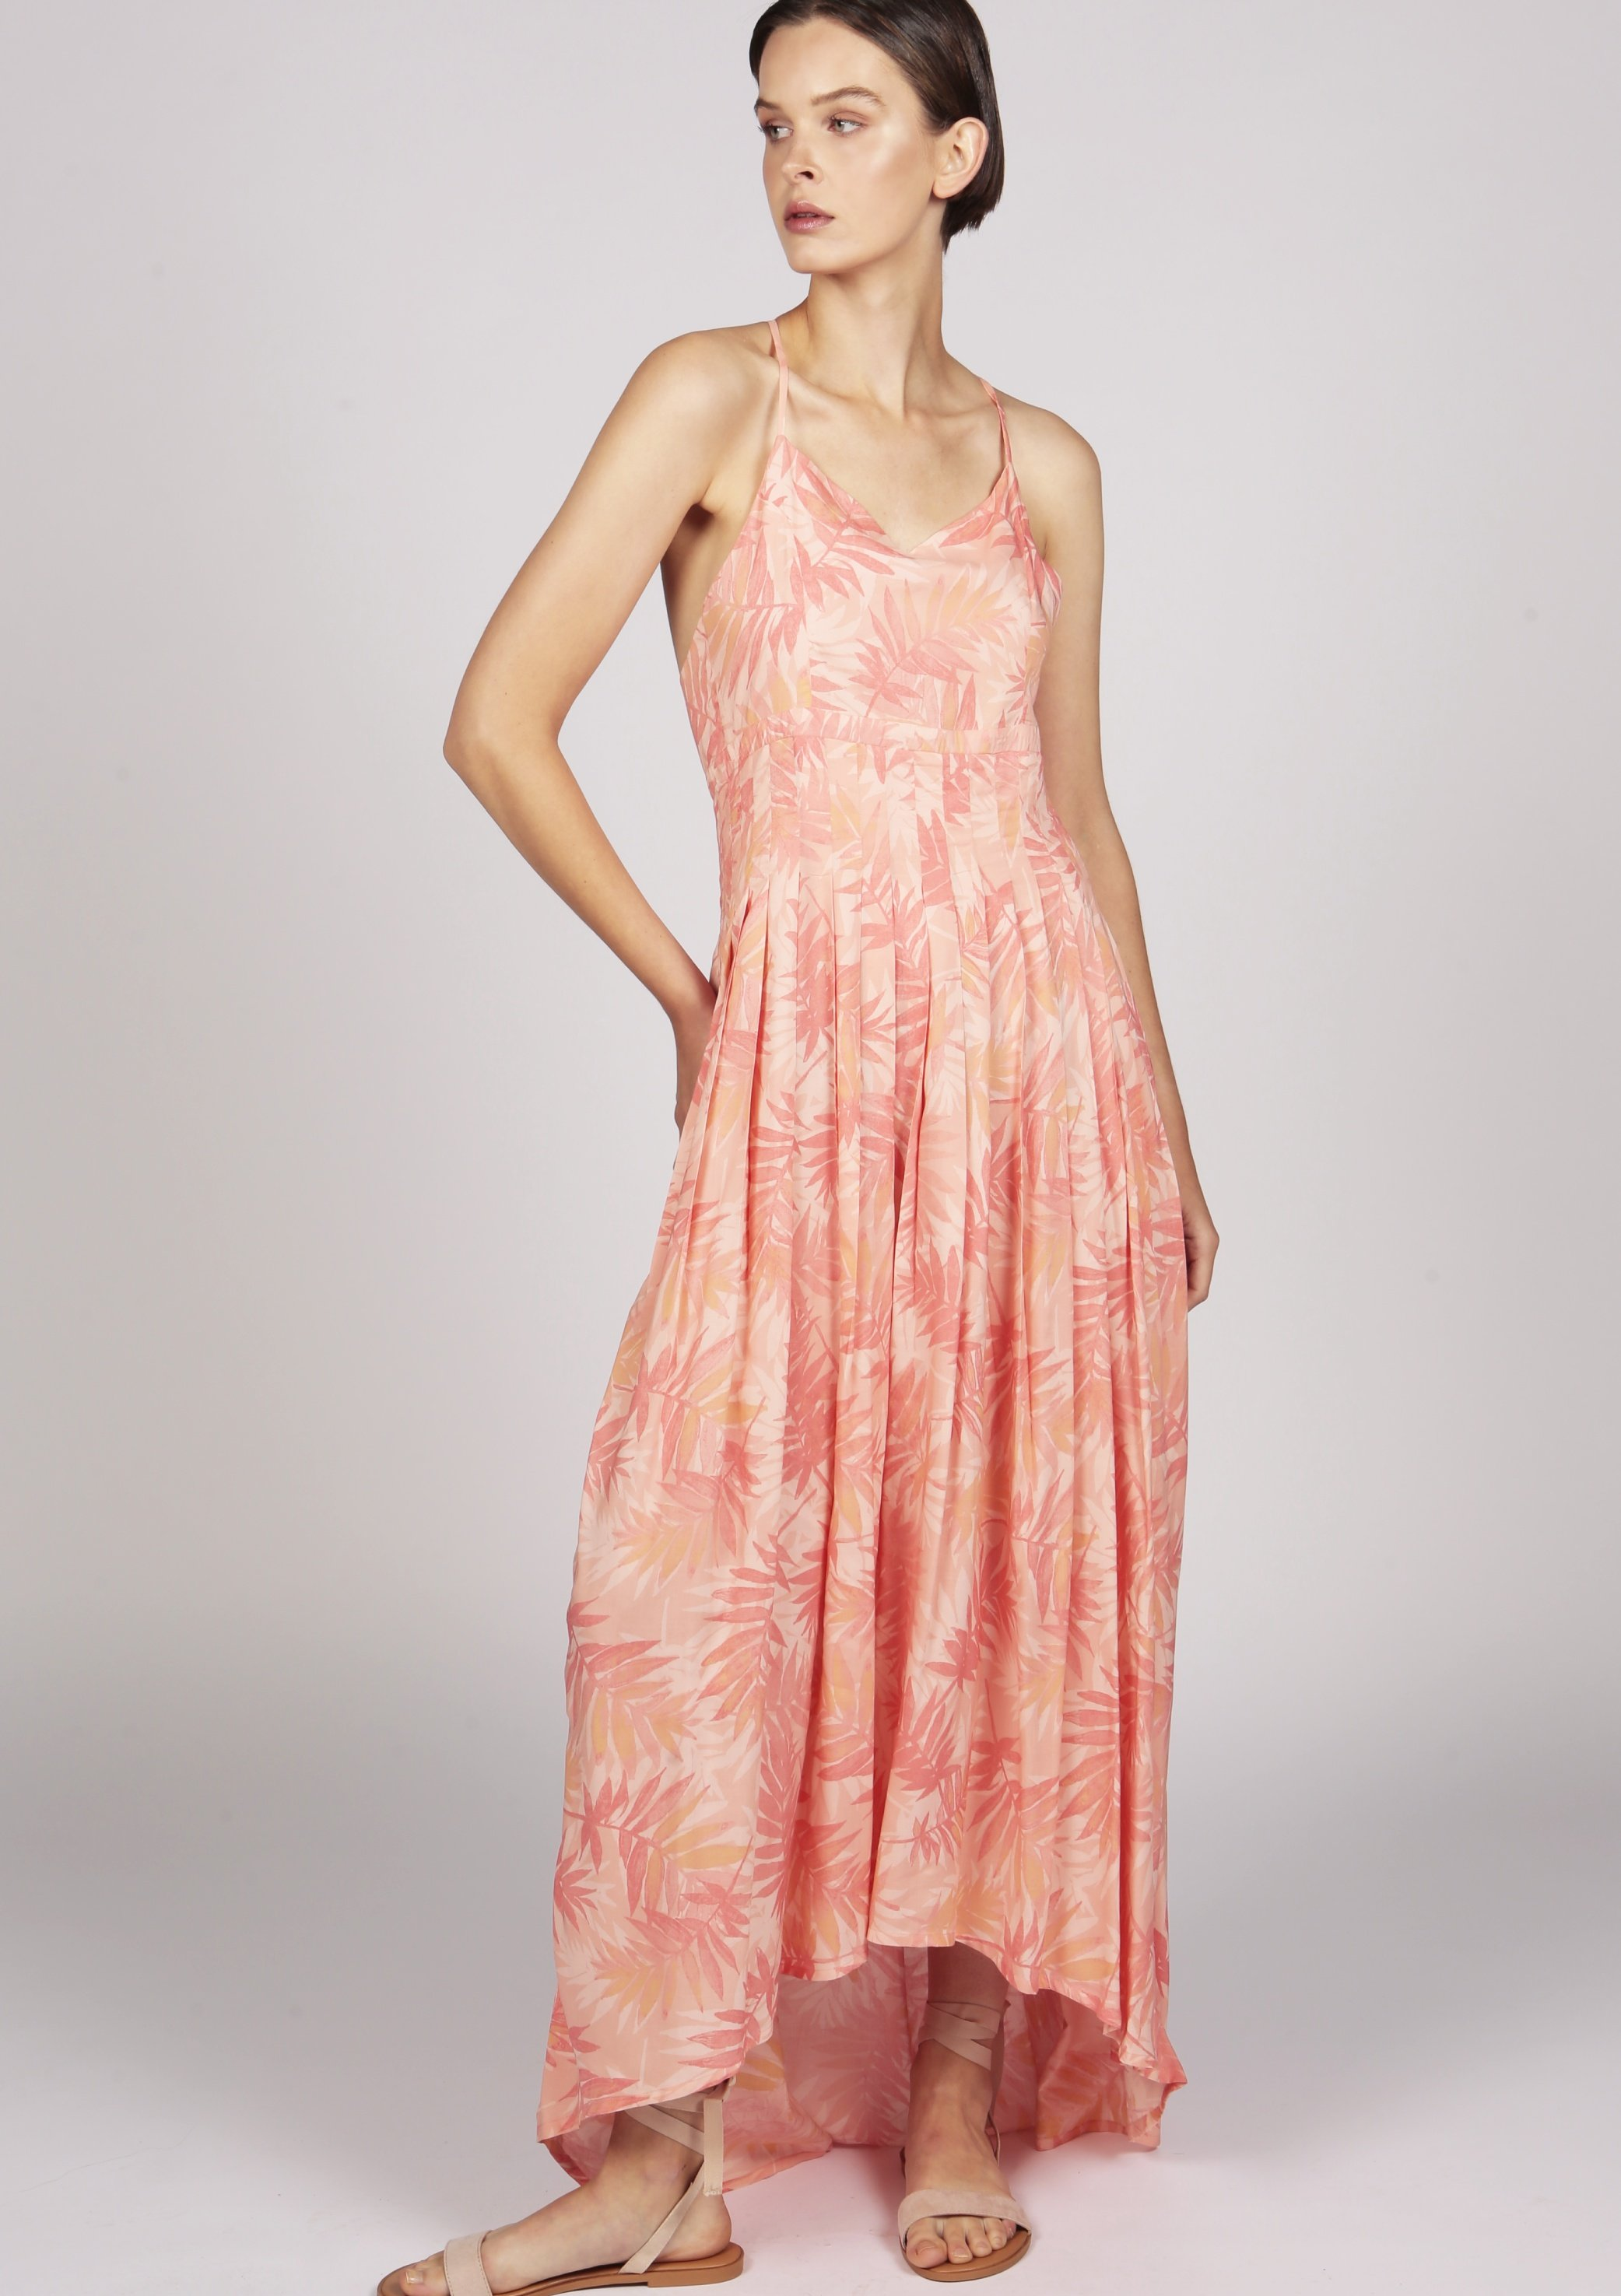 Marguerite printed pink pleated dip-hem maxi cocktail dress